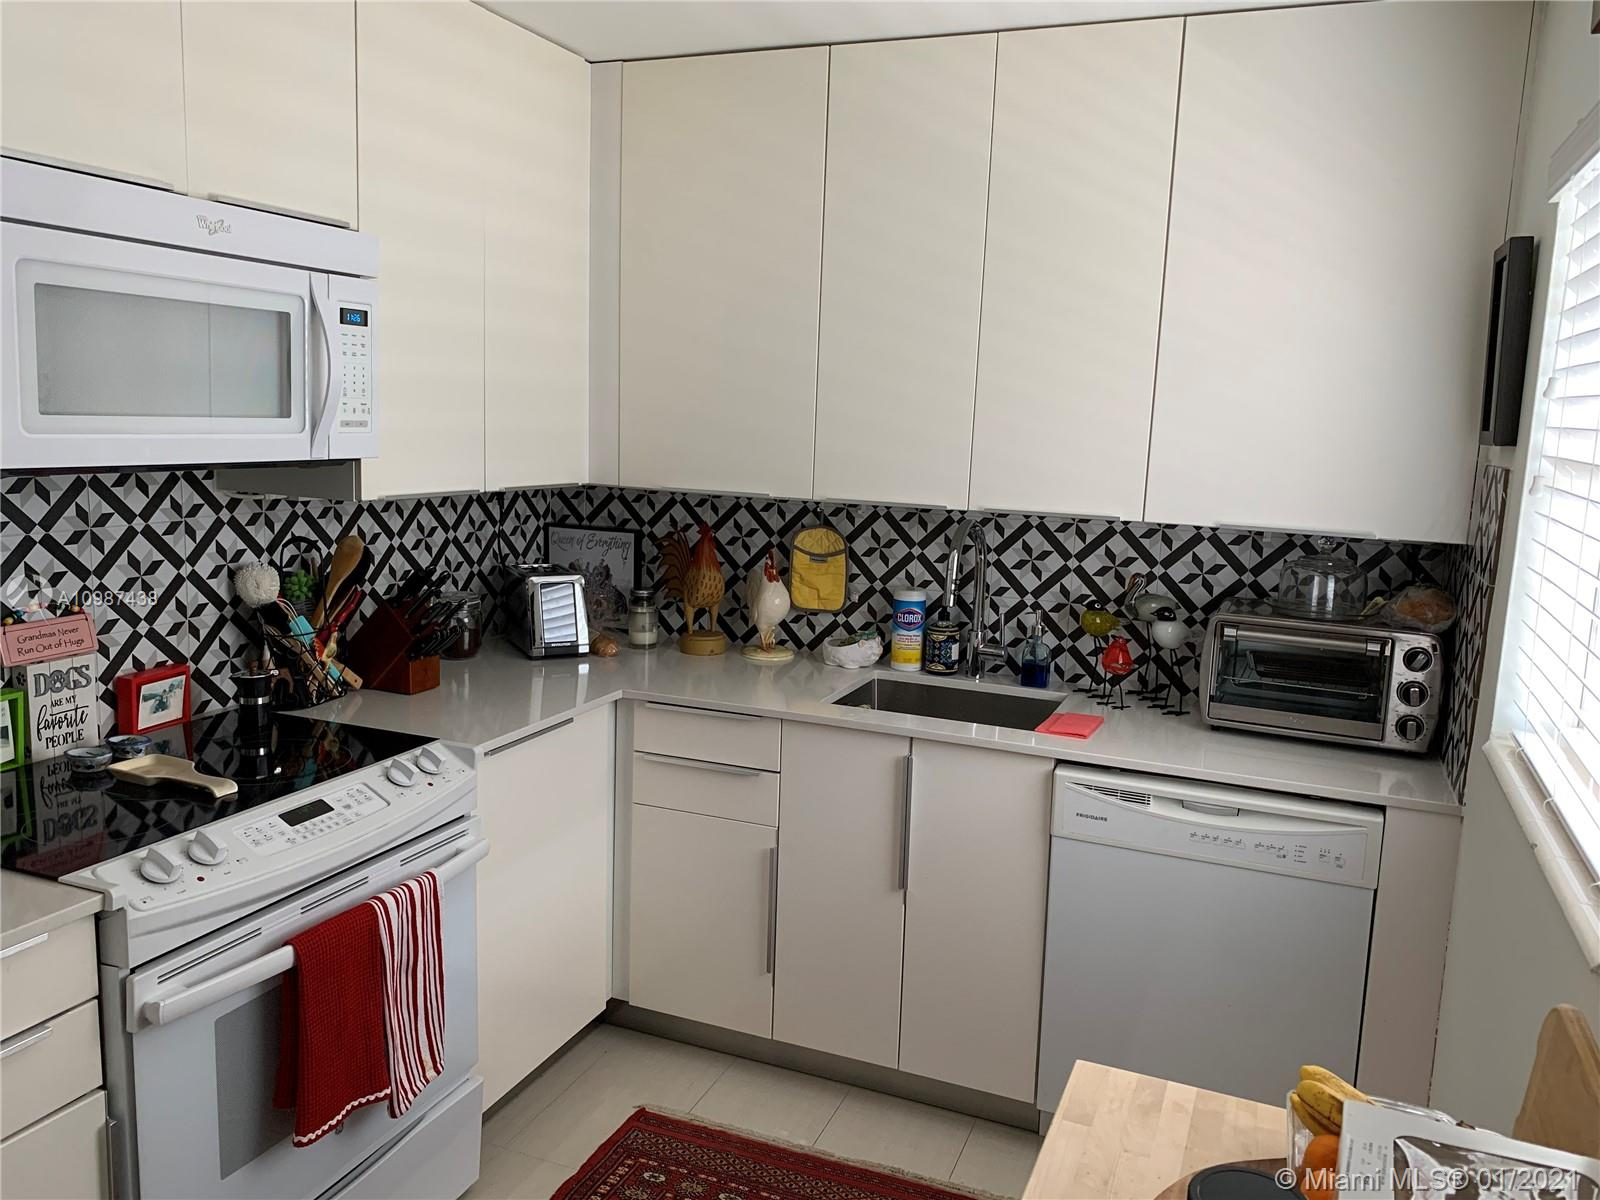 7725 SW 86th St # A1322, Miami, Florida 33143, 1 Bedroom Bedrooms, ,1 BathroomBathrooms,Residential,For Sale,7725 SW 86th St # A1322,A10987438